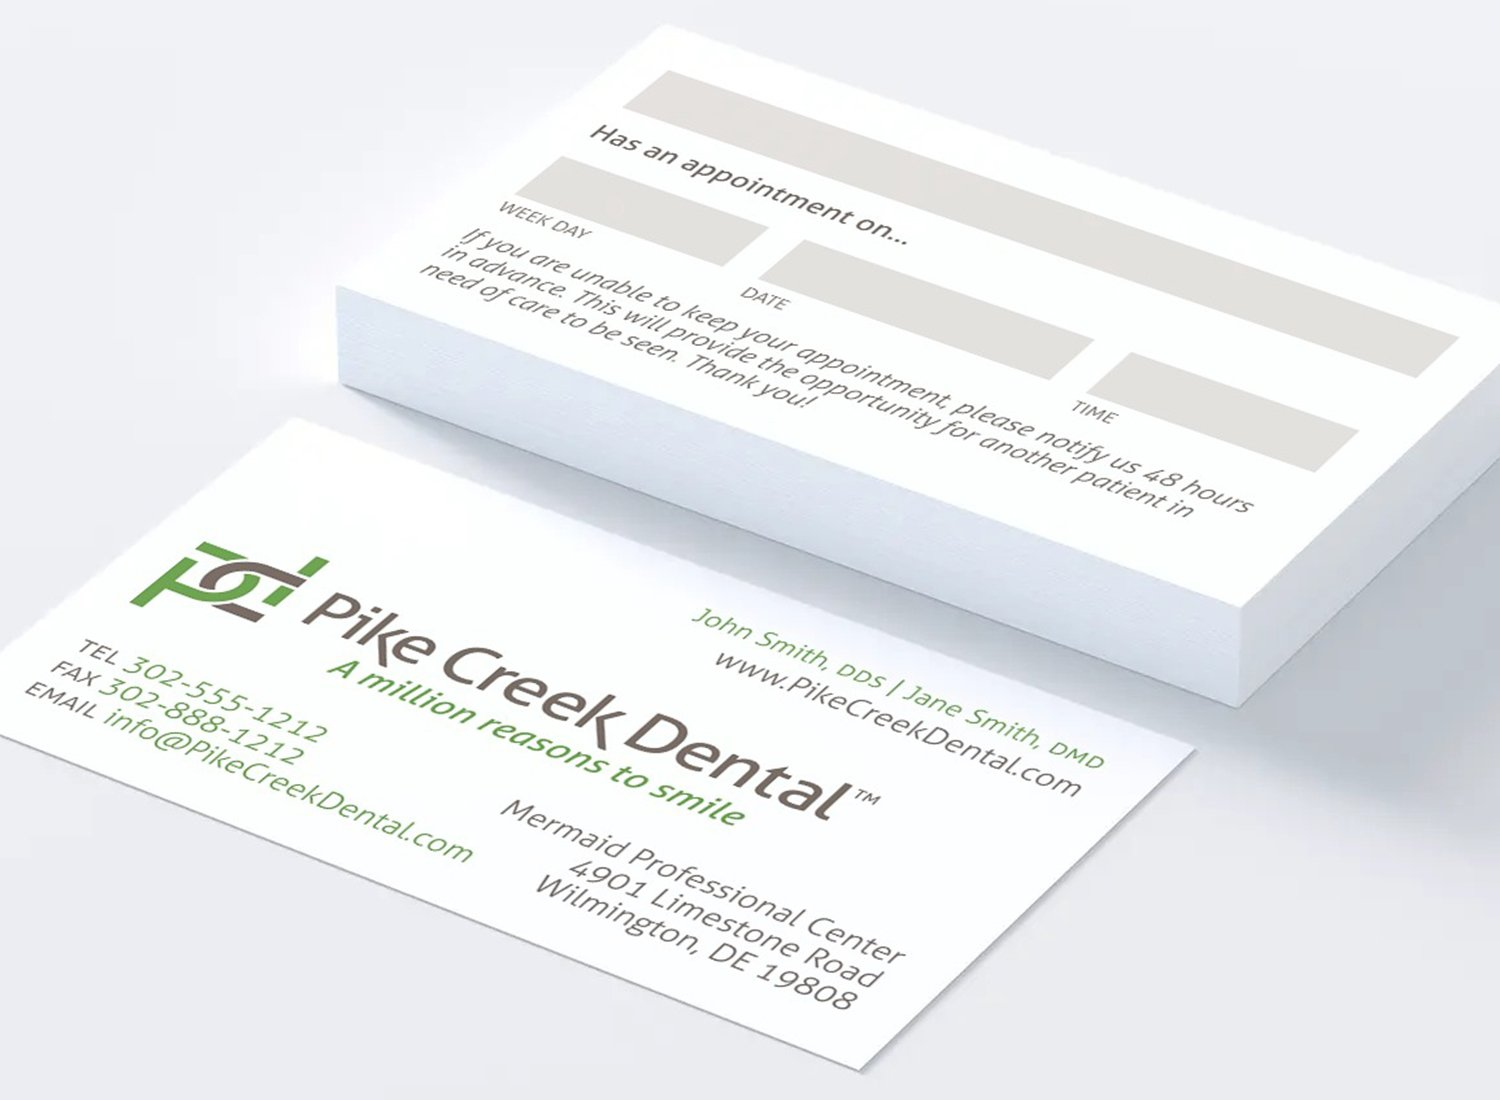 Blue Blaze designed print collateral business cards for Pike Creek Dental